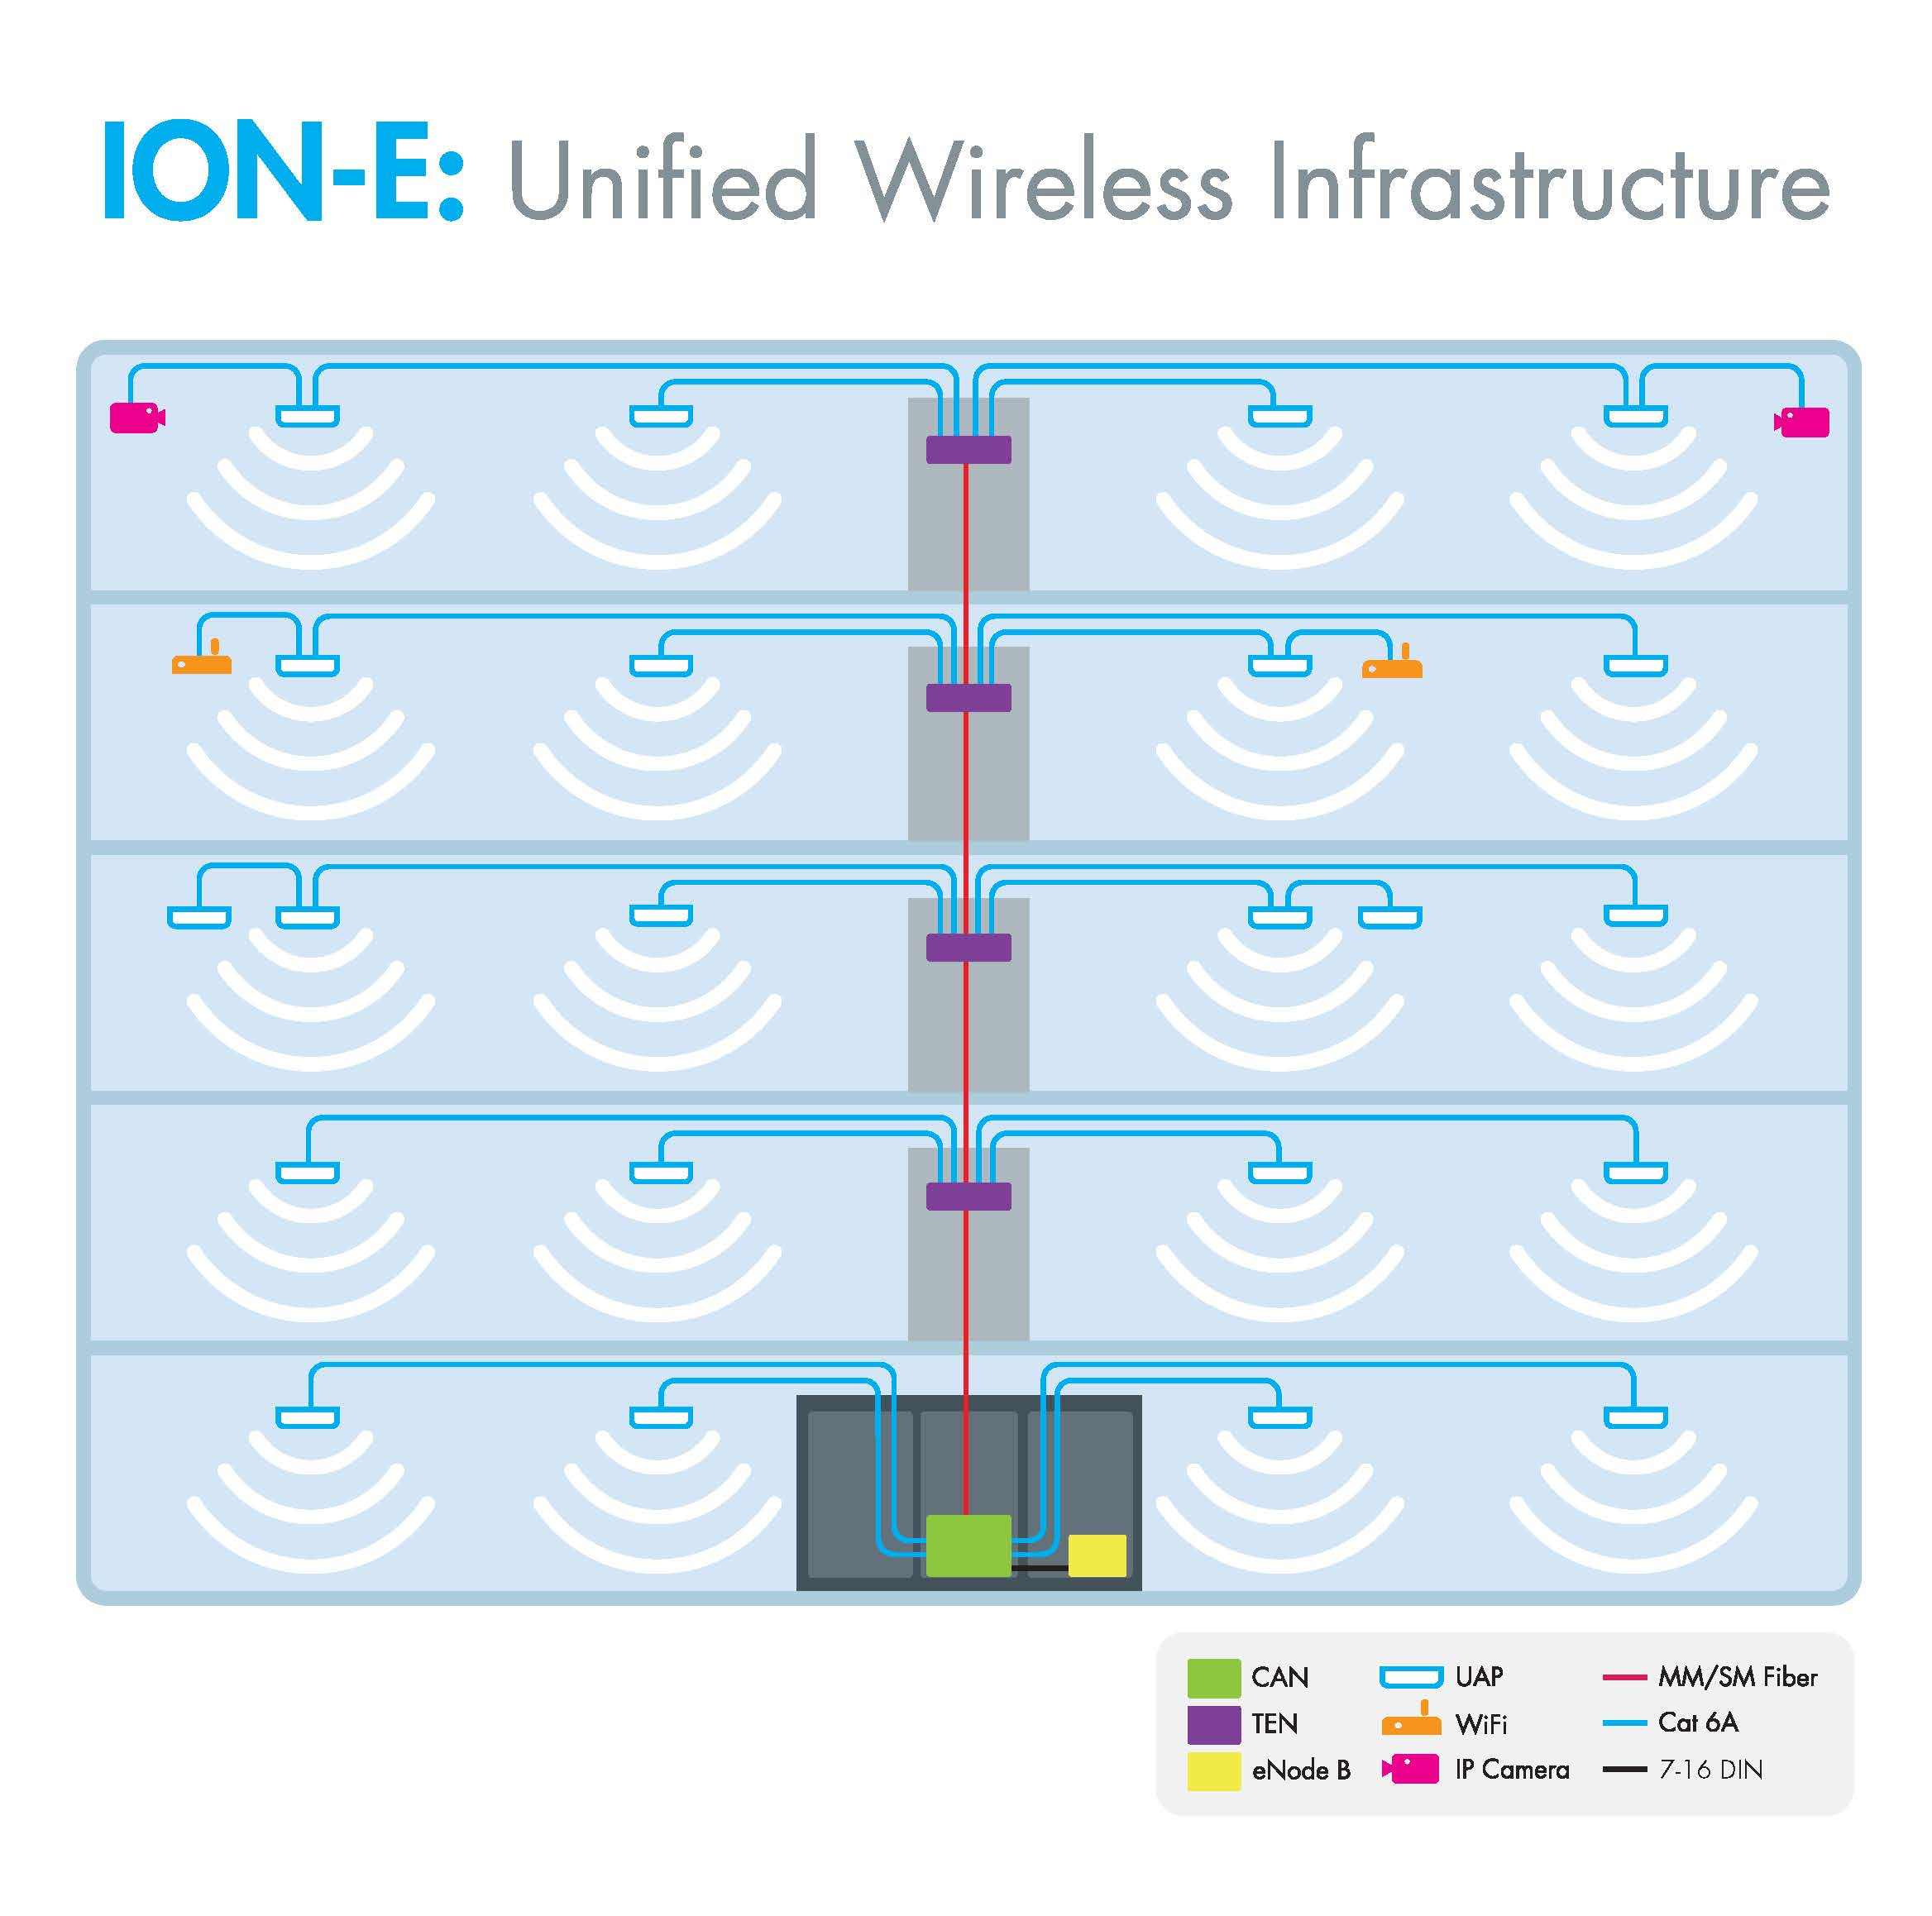 CommScope Opens New Enterprise Wireless Solution for U.S. Operator ...